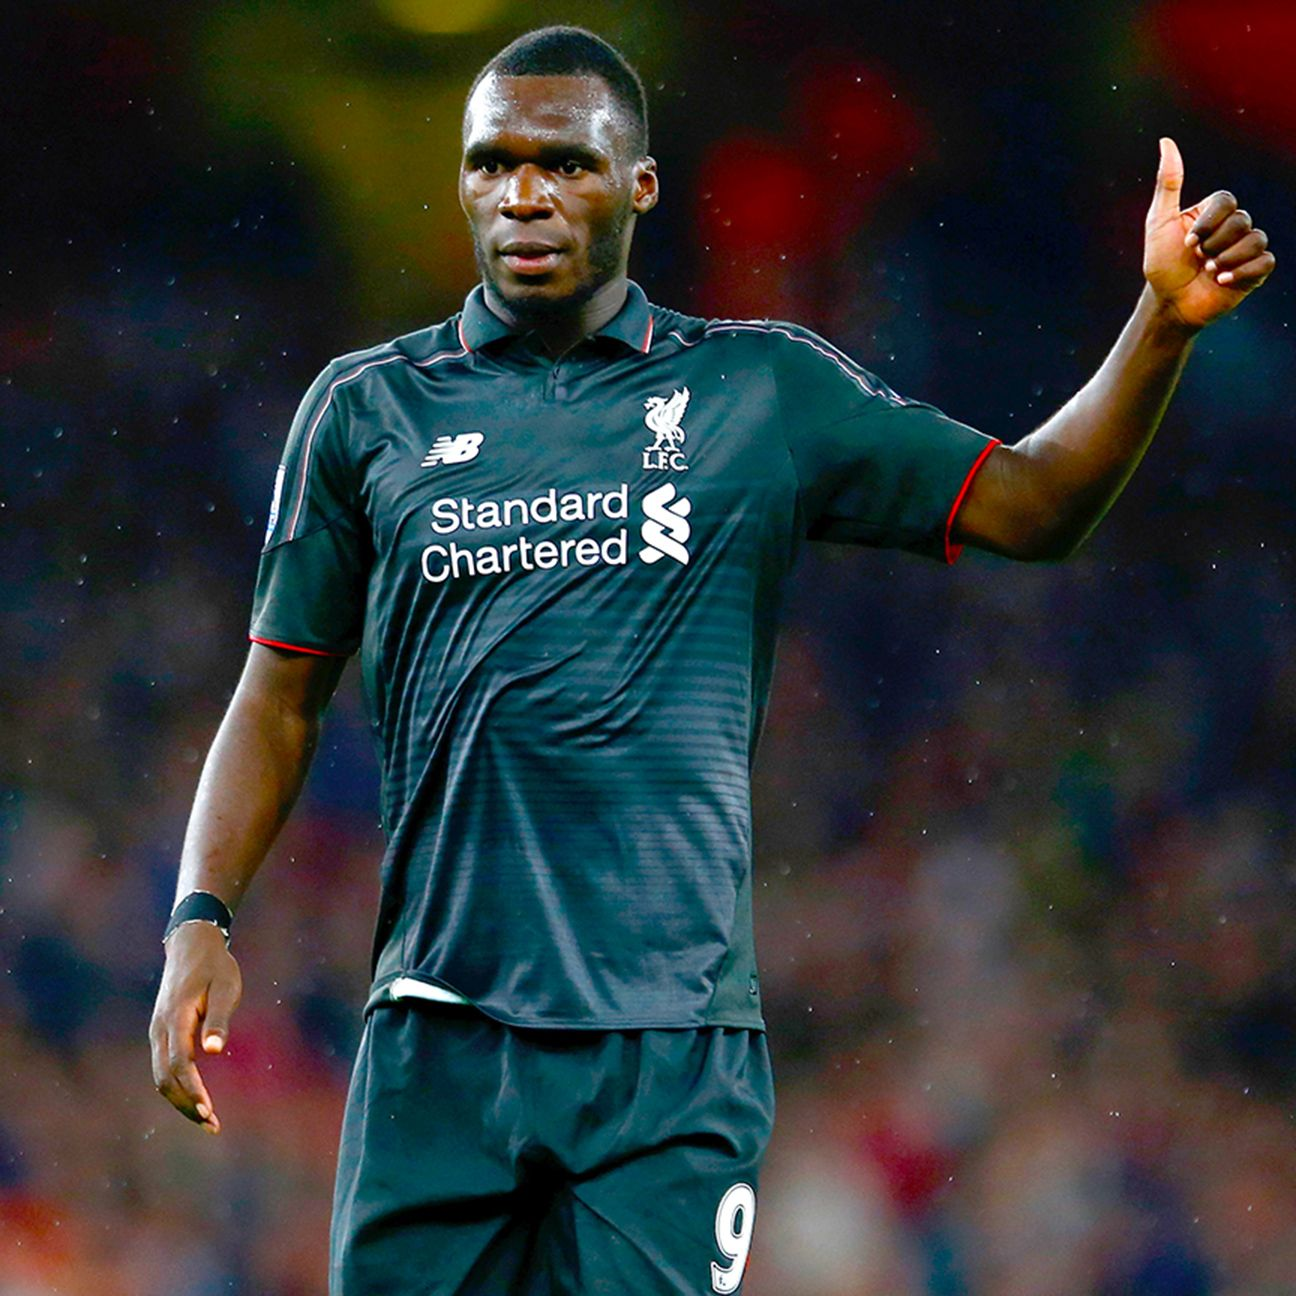 Christian Benteke should have scoring chances at his disposal when Liverpool face West Ham.